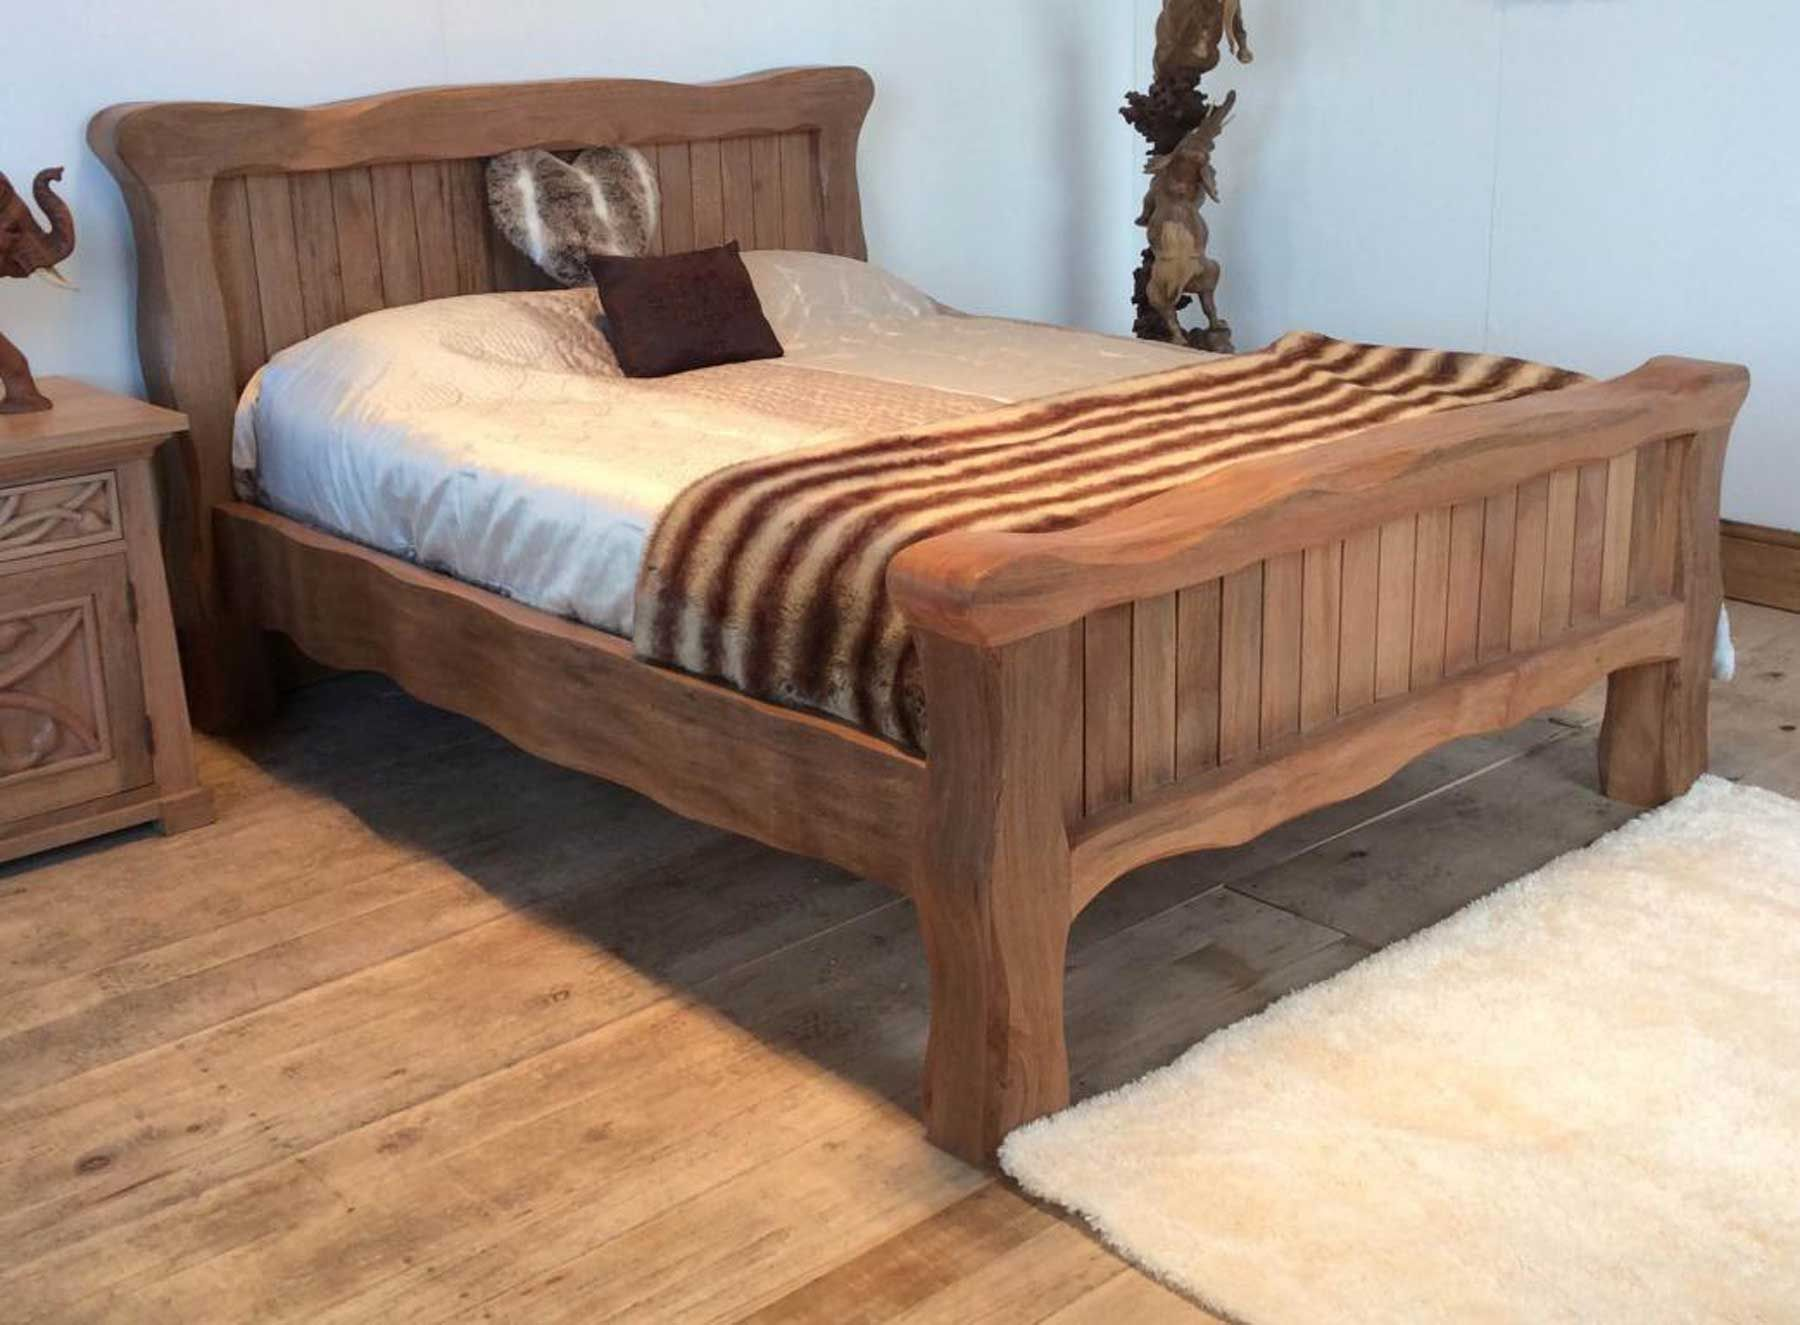 Solid Wood Beds Online Uk Cheap Beds For Sale Uk Solid Wood Bed Frame Furniture Wood Bed Frame